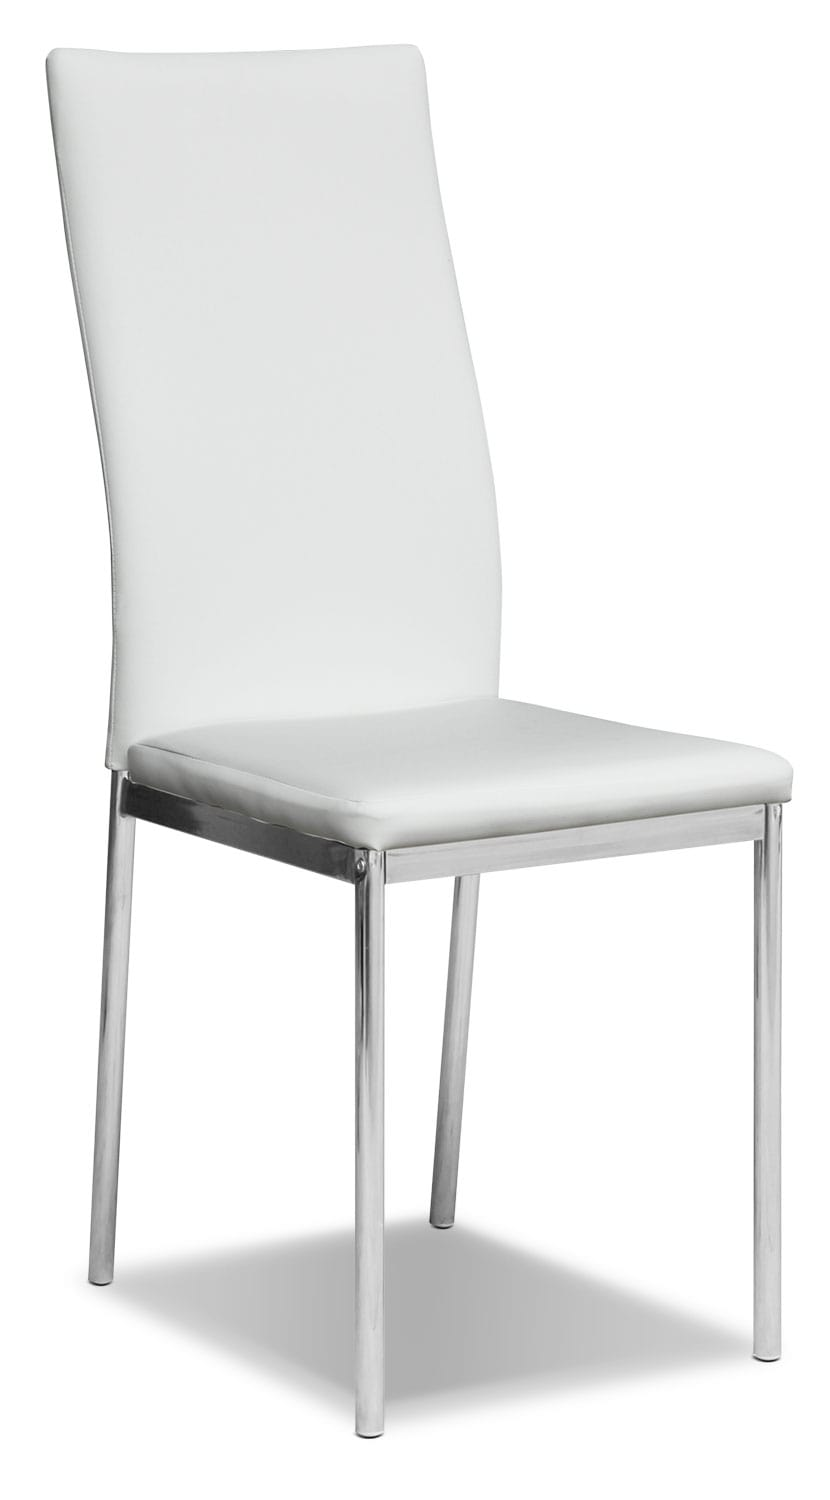 Dining Room Furniture - Koda Dining Chair - White